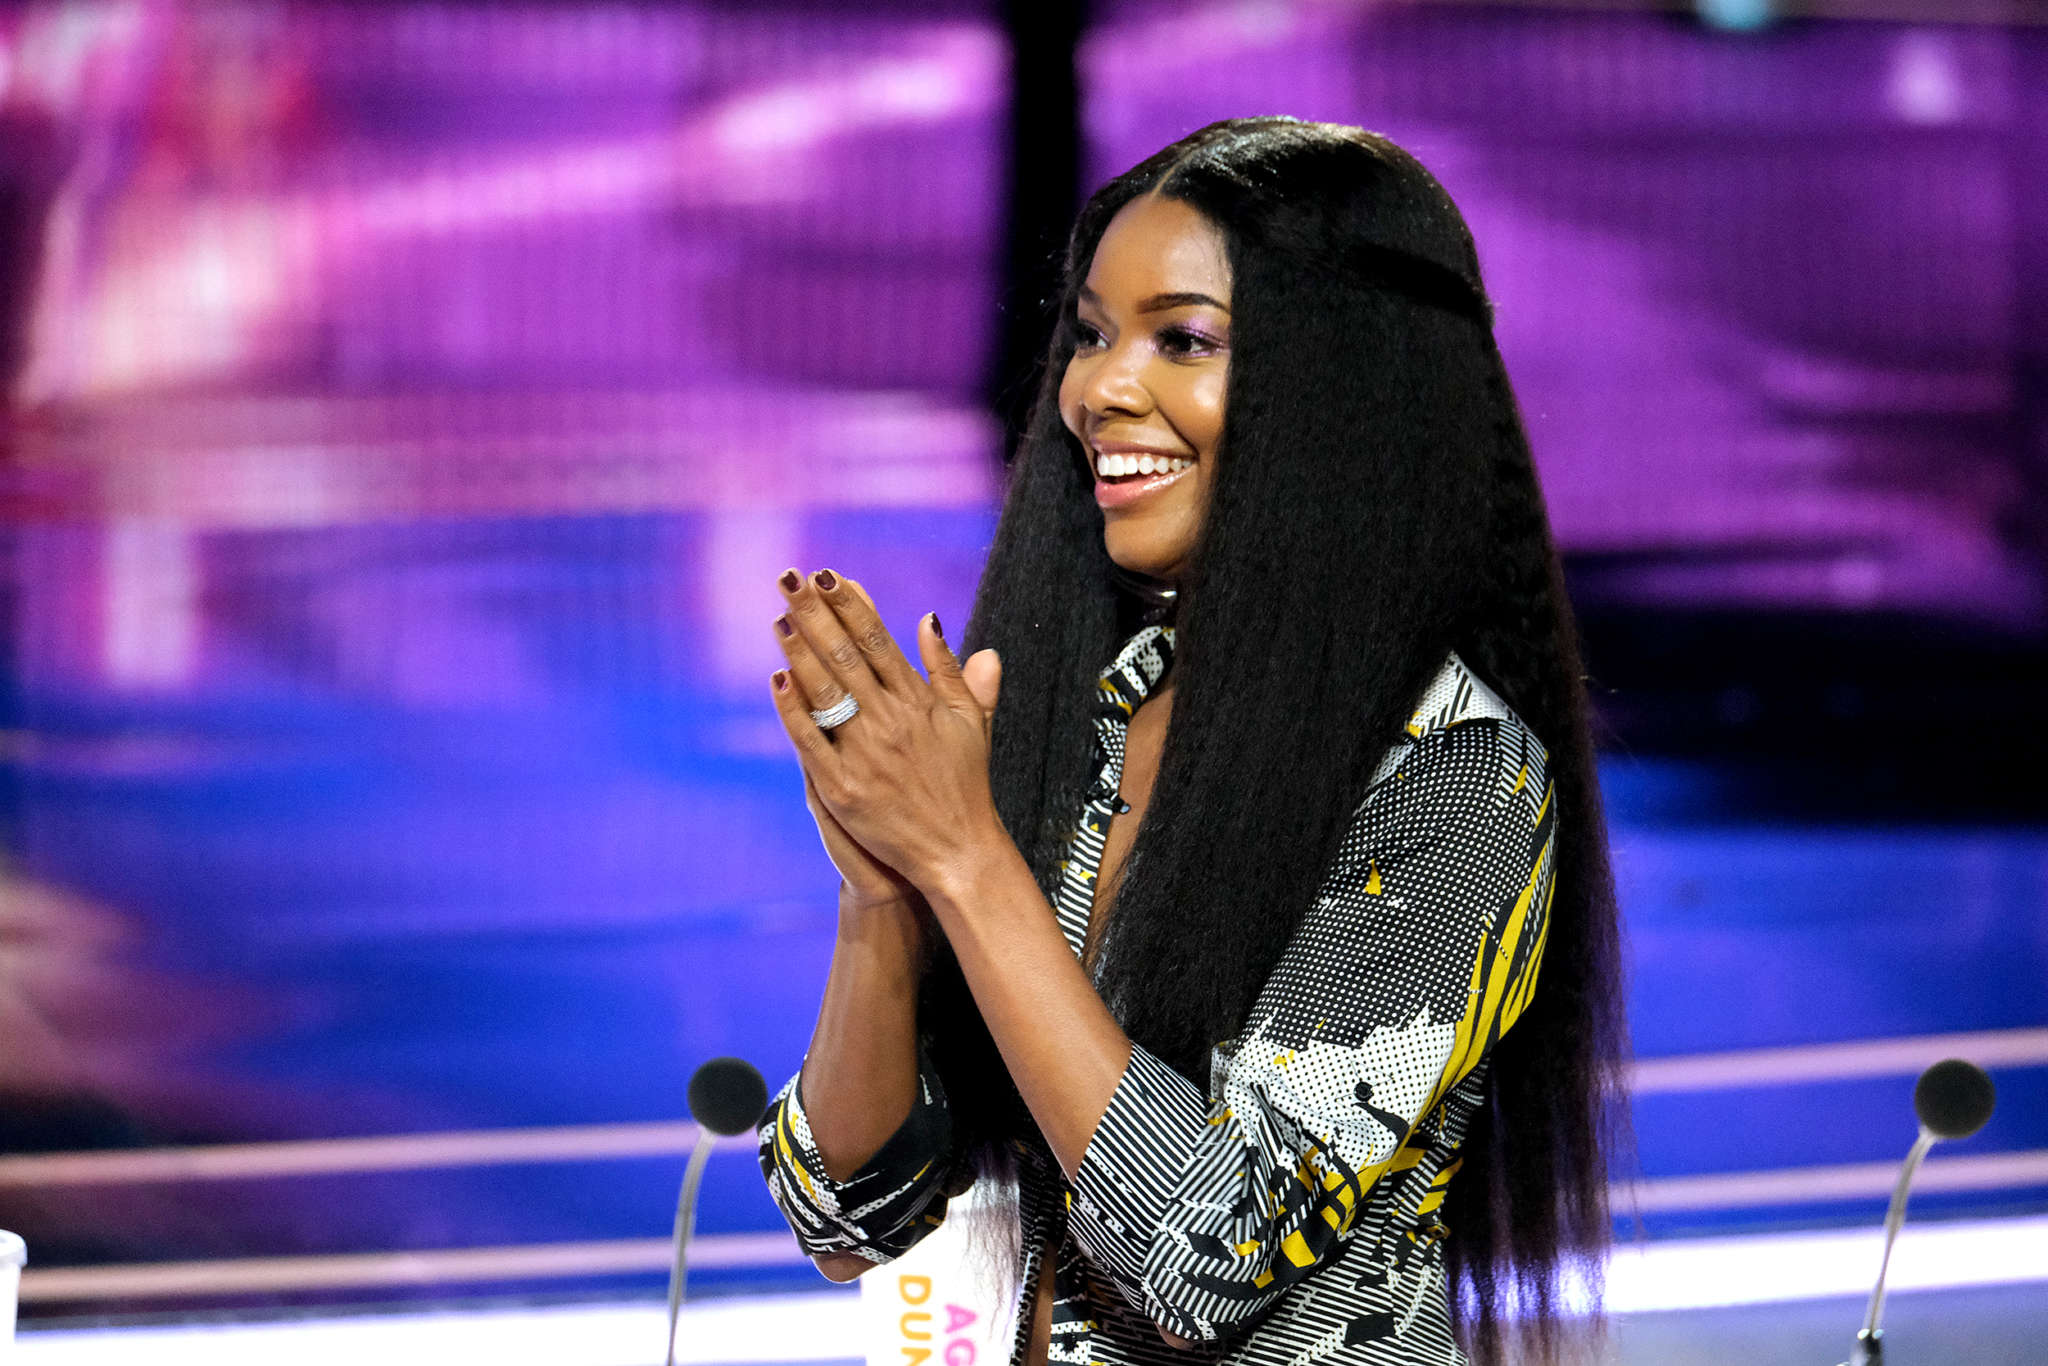 Gabrielle Union Shares A TikTok Video With Kaavia James And Impresses Fans